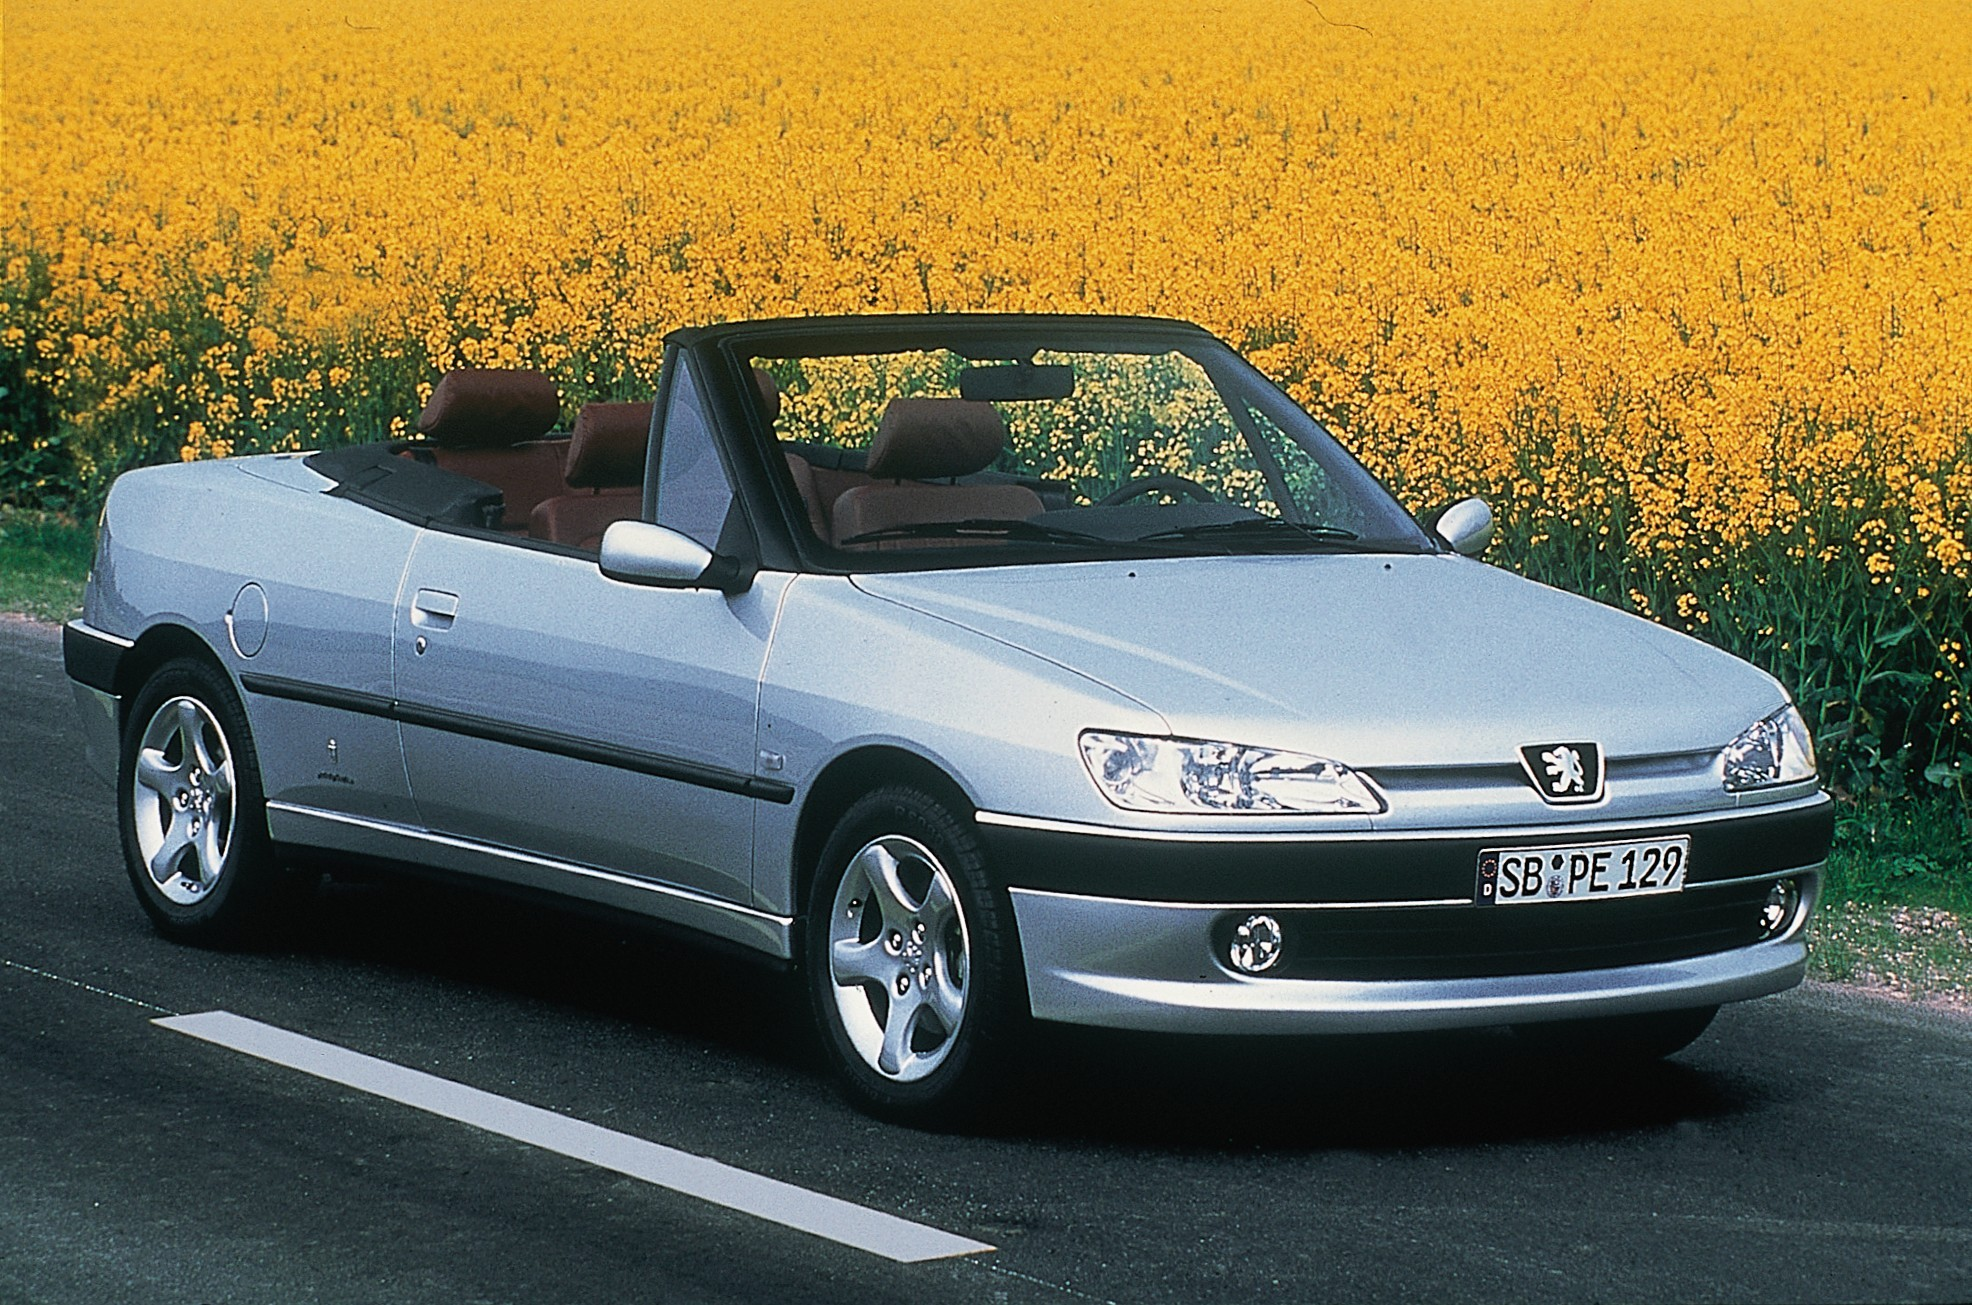 Peugeot 306 Cabriolet 1997 besides Jaguar Xk 2006 in addition 2000 Opel Omega together with RACING CARS likewise Audi 100 Interior 1. on 1997 acura coupe